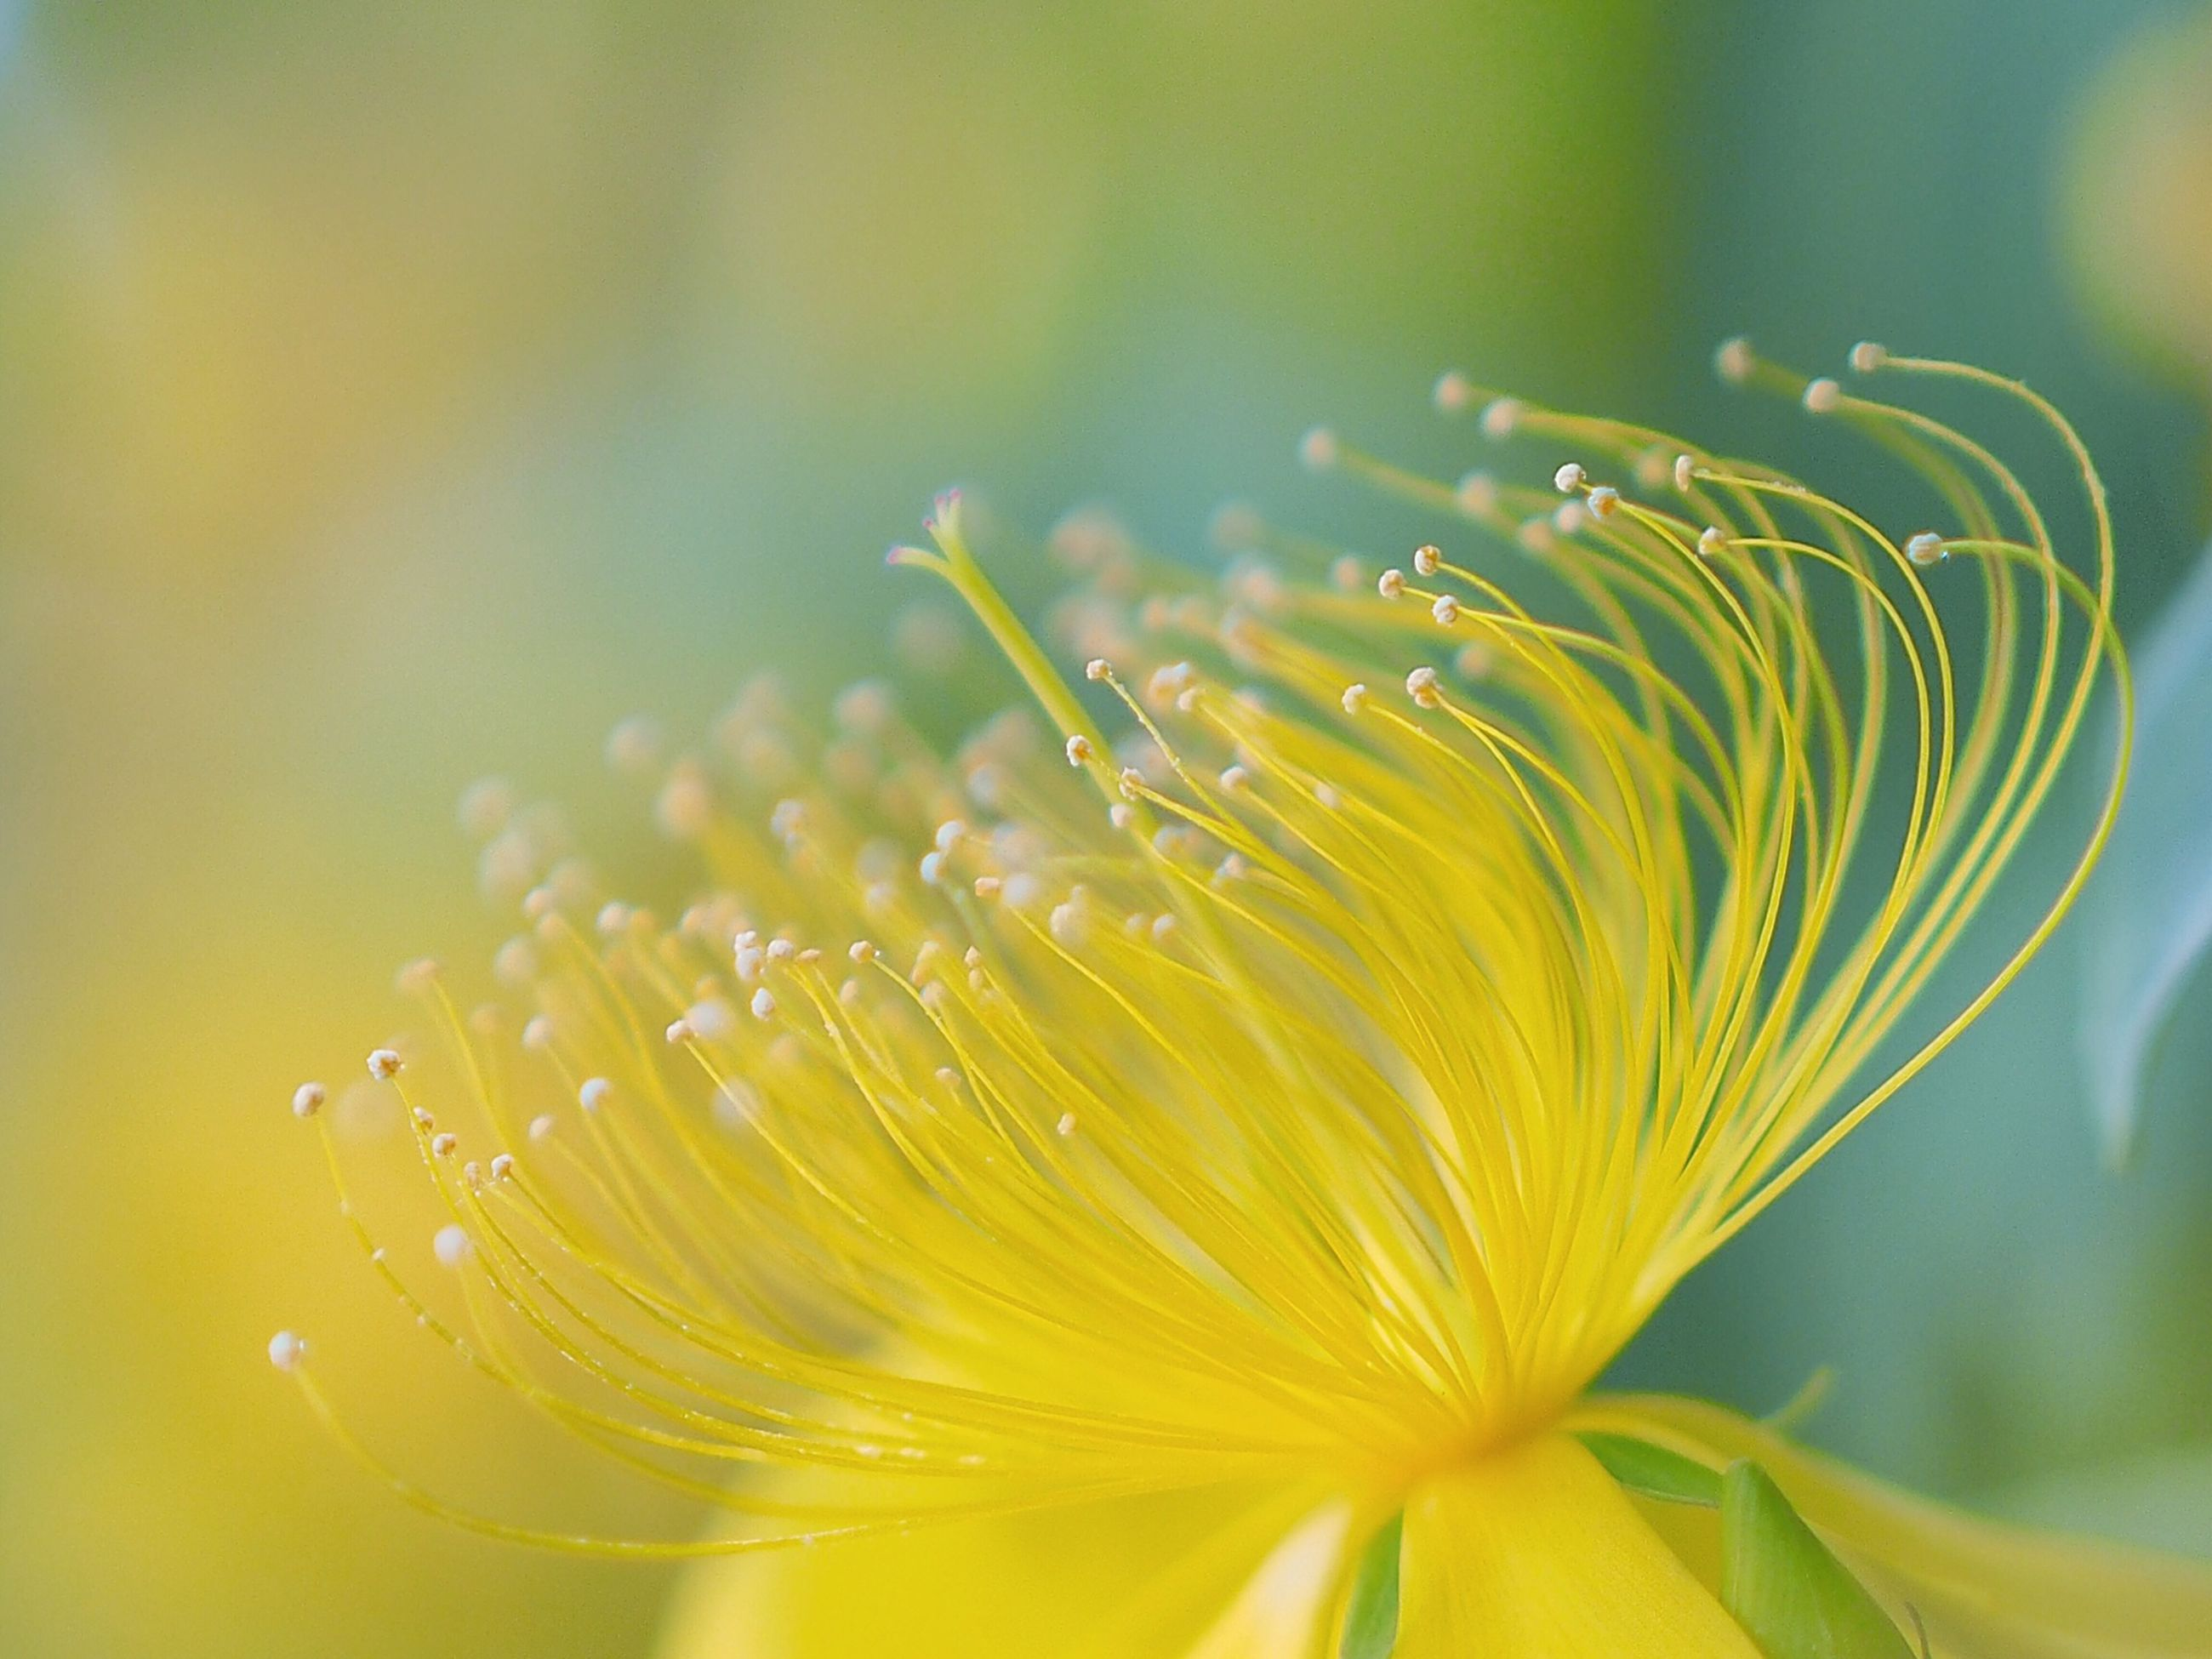 freshness, flower, growth, fragility, close-up, yellow, beauty in nature, nature, petal, plant, flower head, focus on foreground, water, drop, selective focus, wet, single flower, outdoors, blooming, day